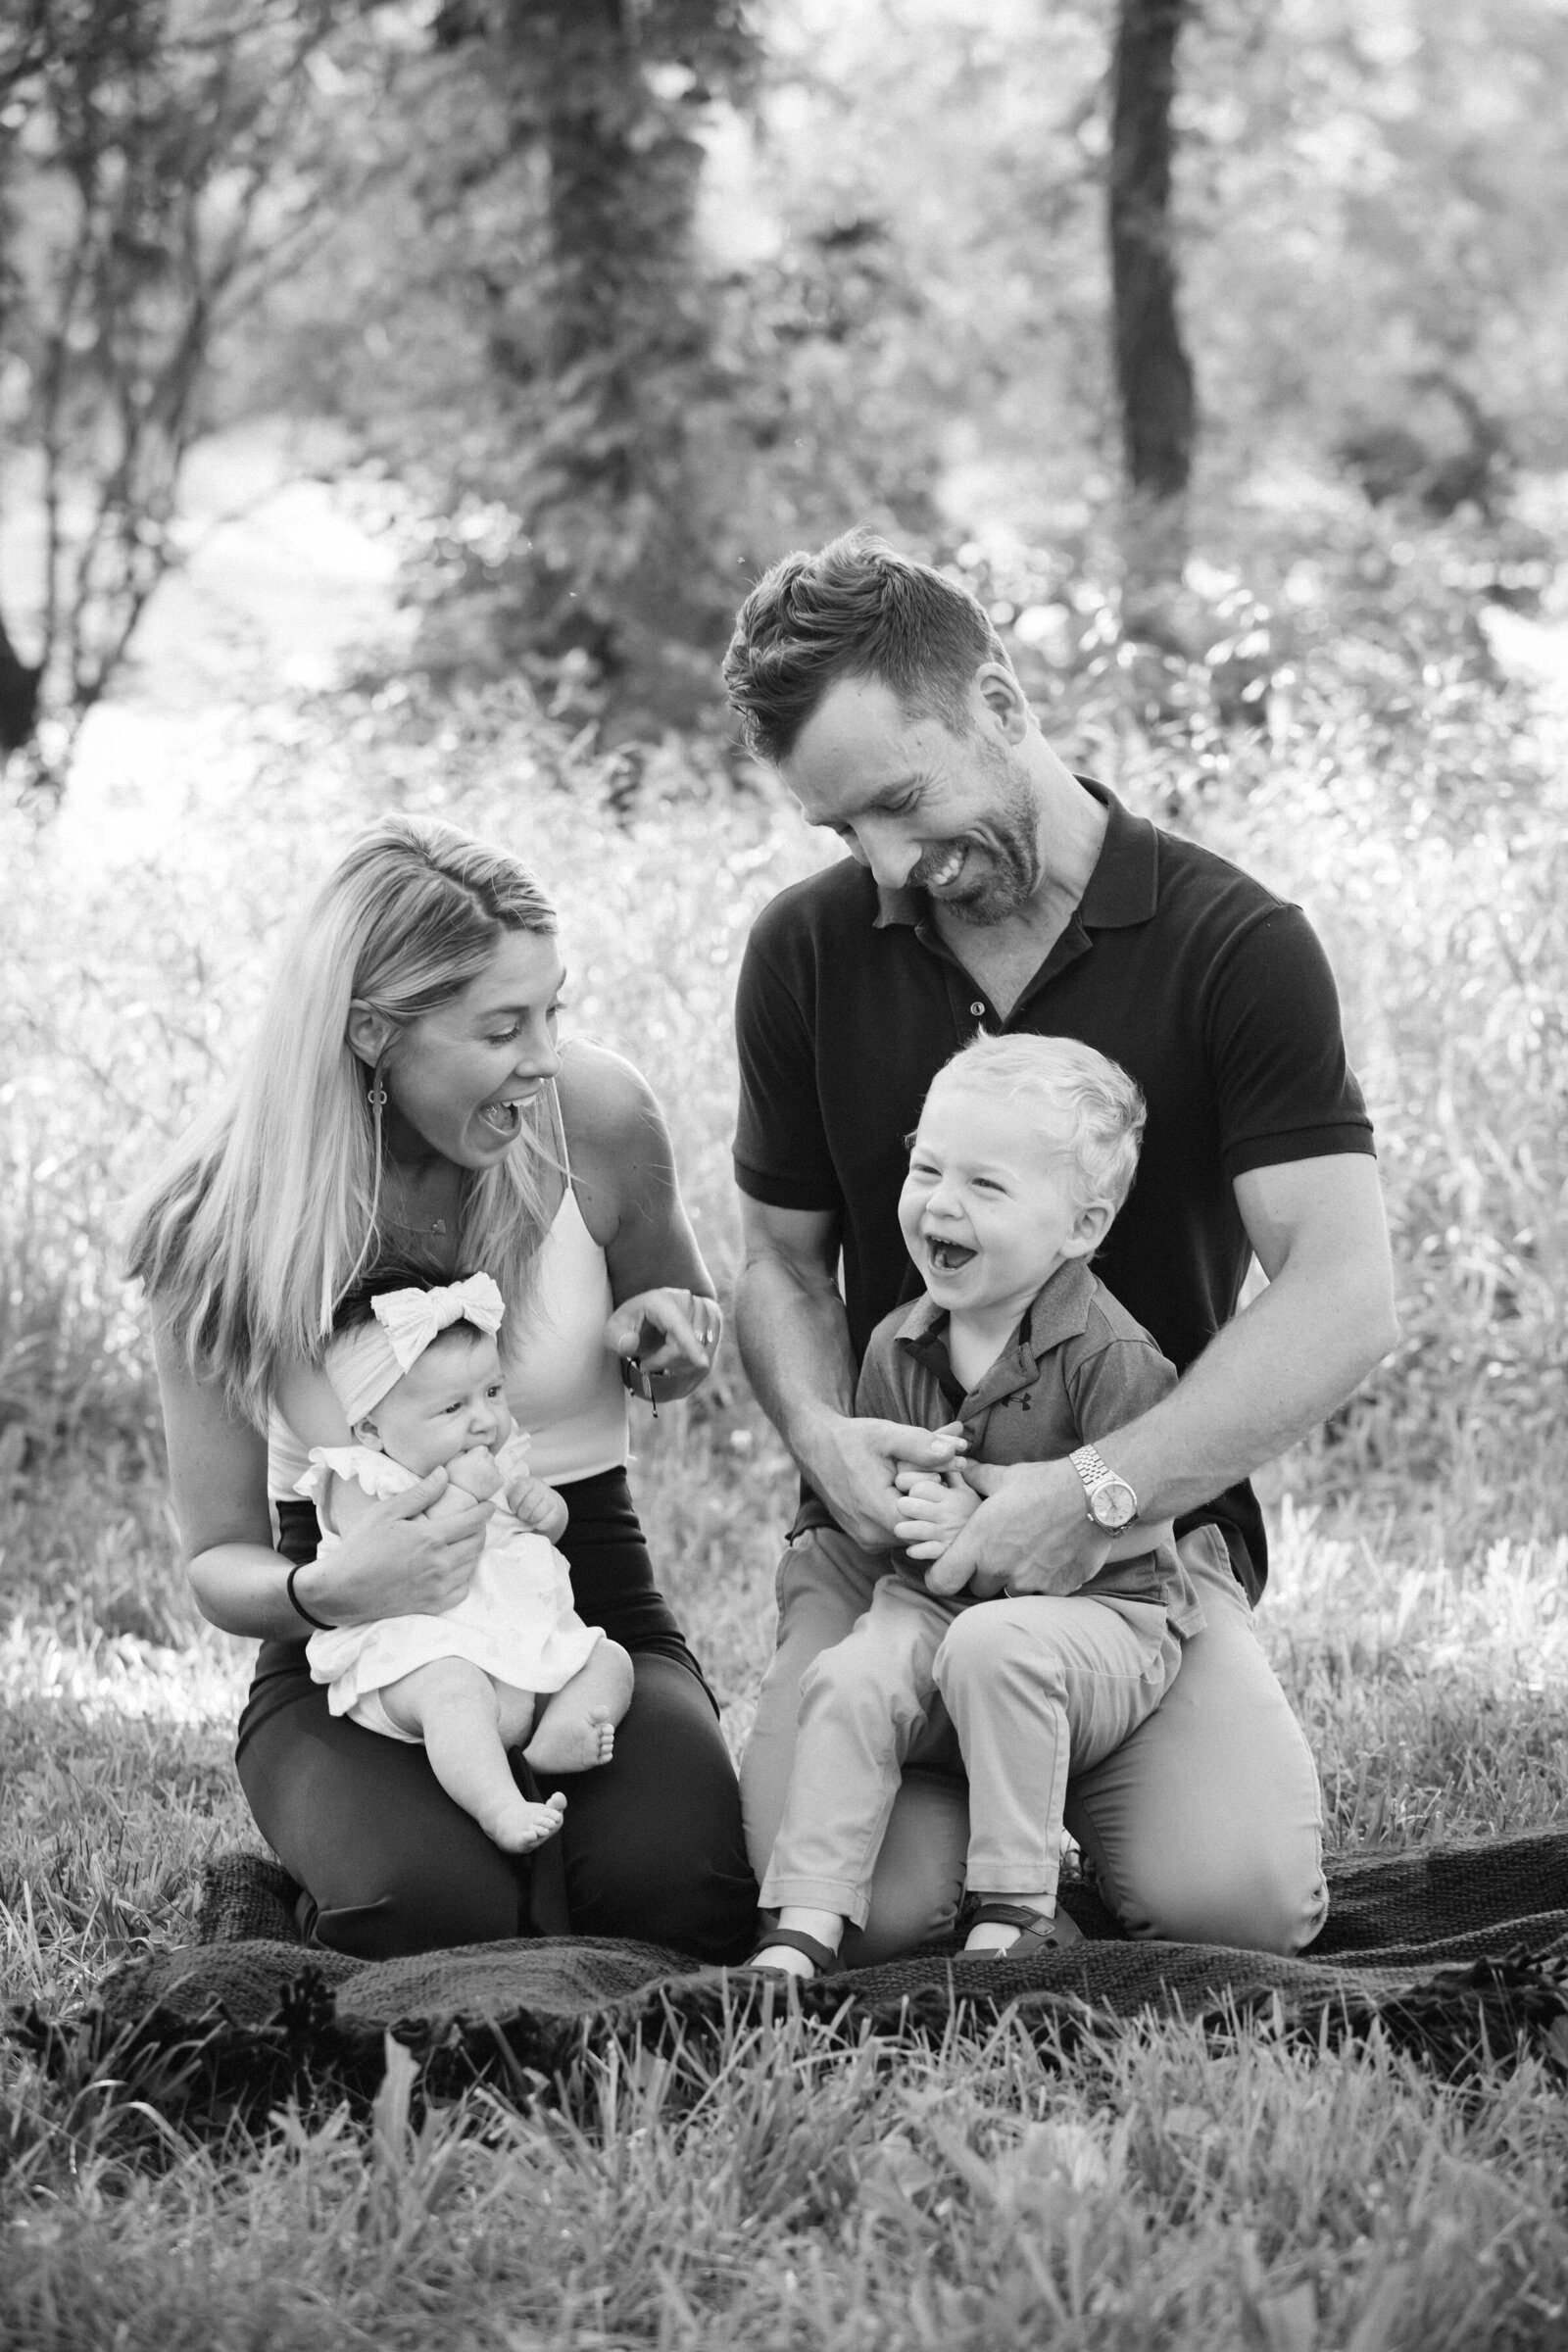 wilke_family_session_2020_rkc_photography-108